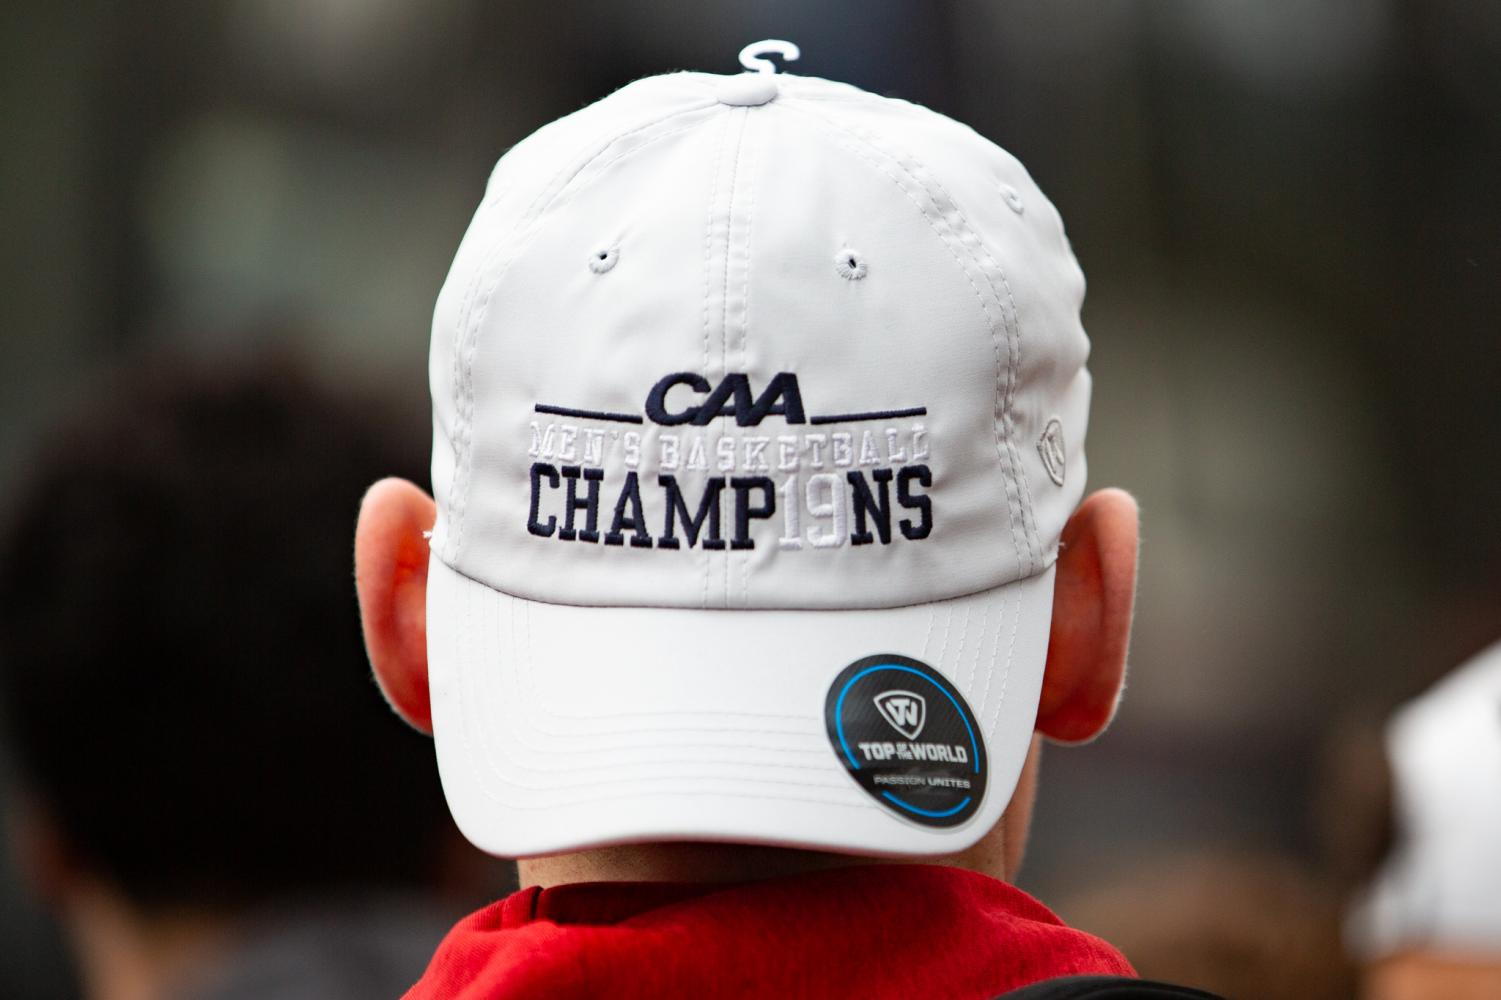 The+CAA+Champions+hat+was+shown+off+by+the+team+Wednesday.